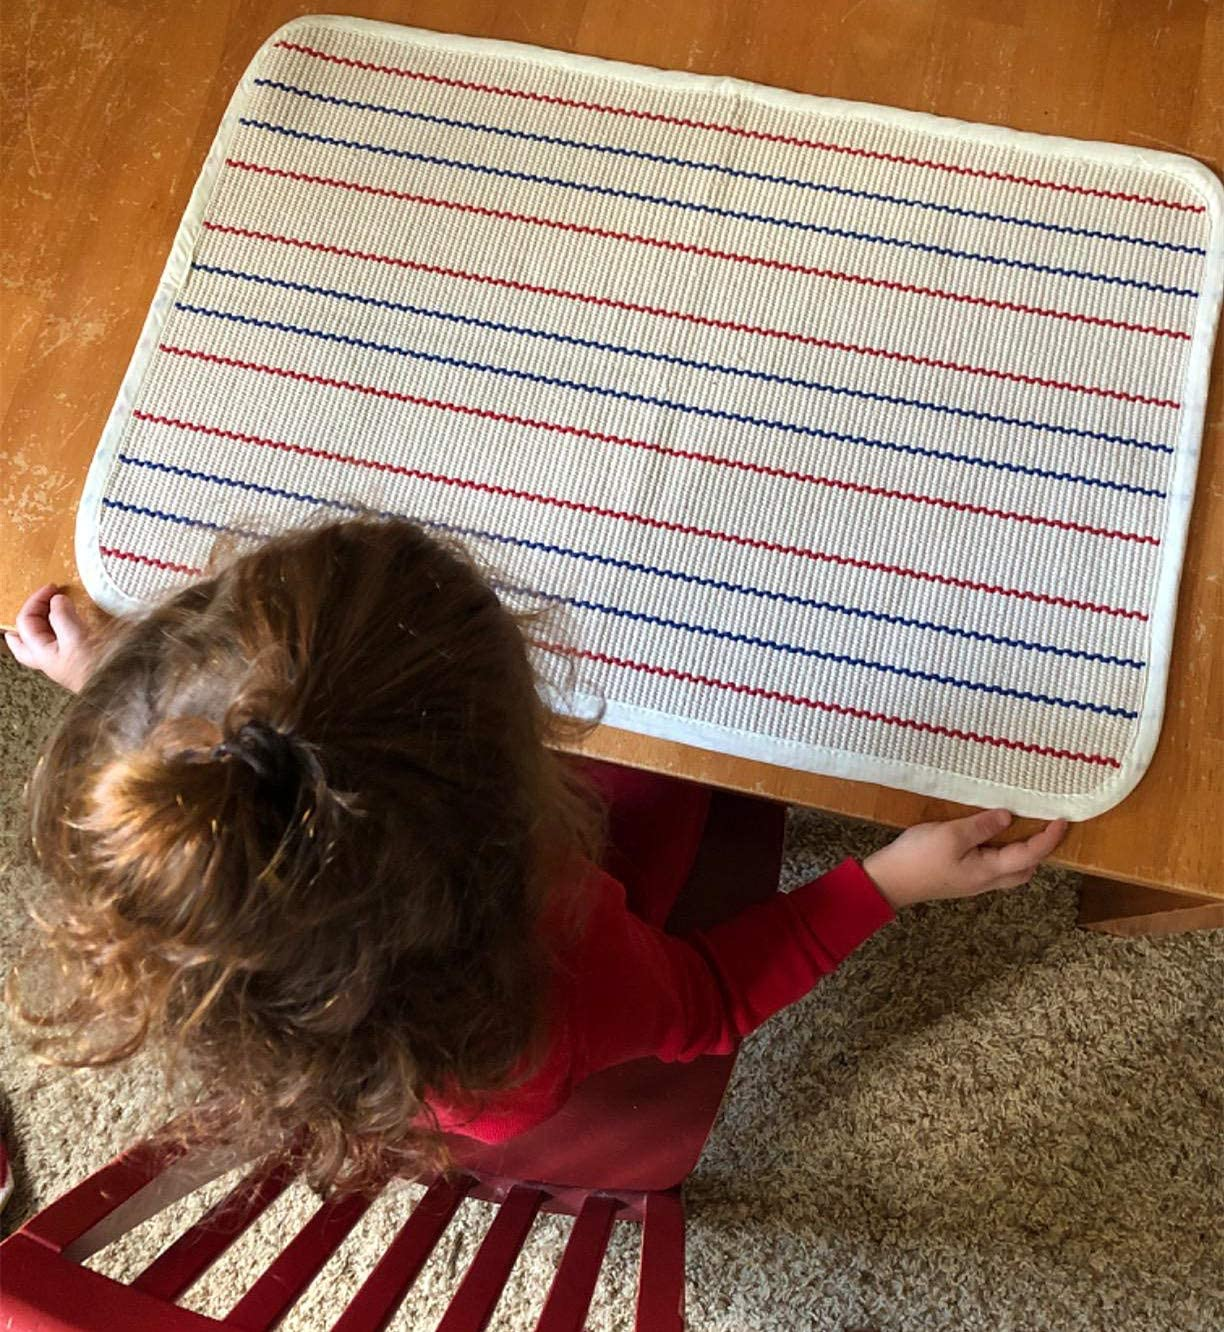 Kids Rug Montessori Mat Children Playing Mat for Nursery Cotton Montessori Working Rug Suitable for Uppercase Letters, 23.6''×31.5'', Stripes